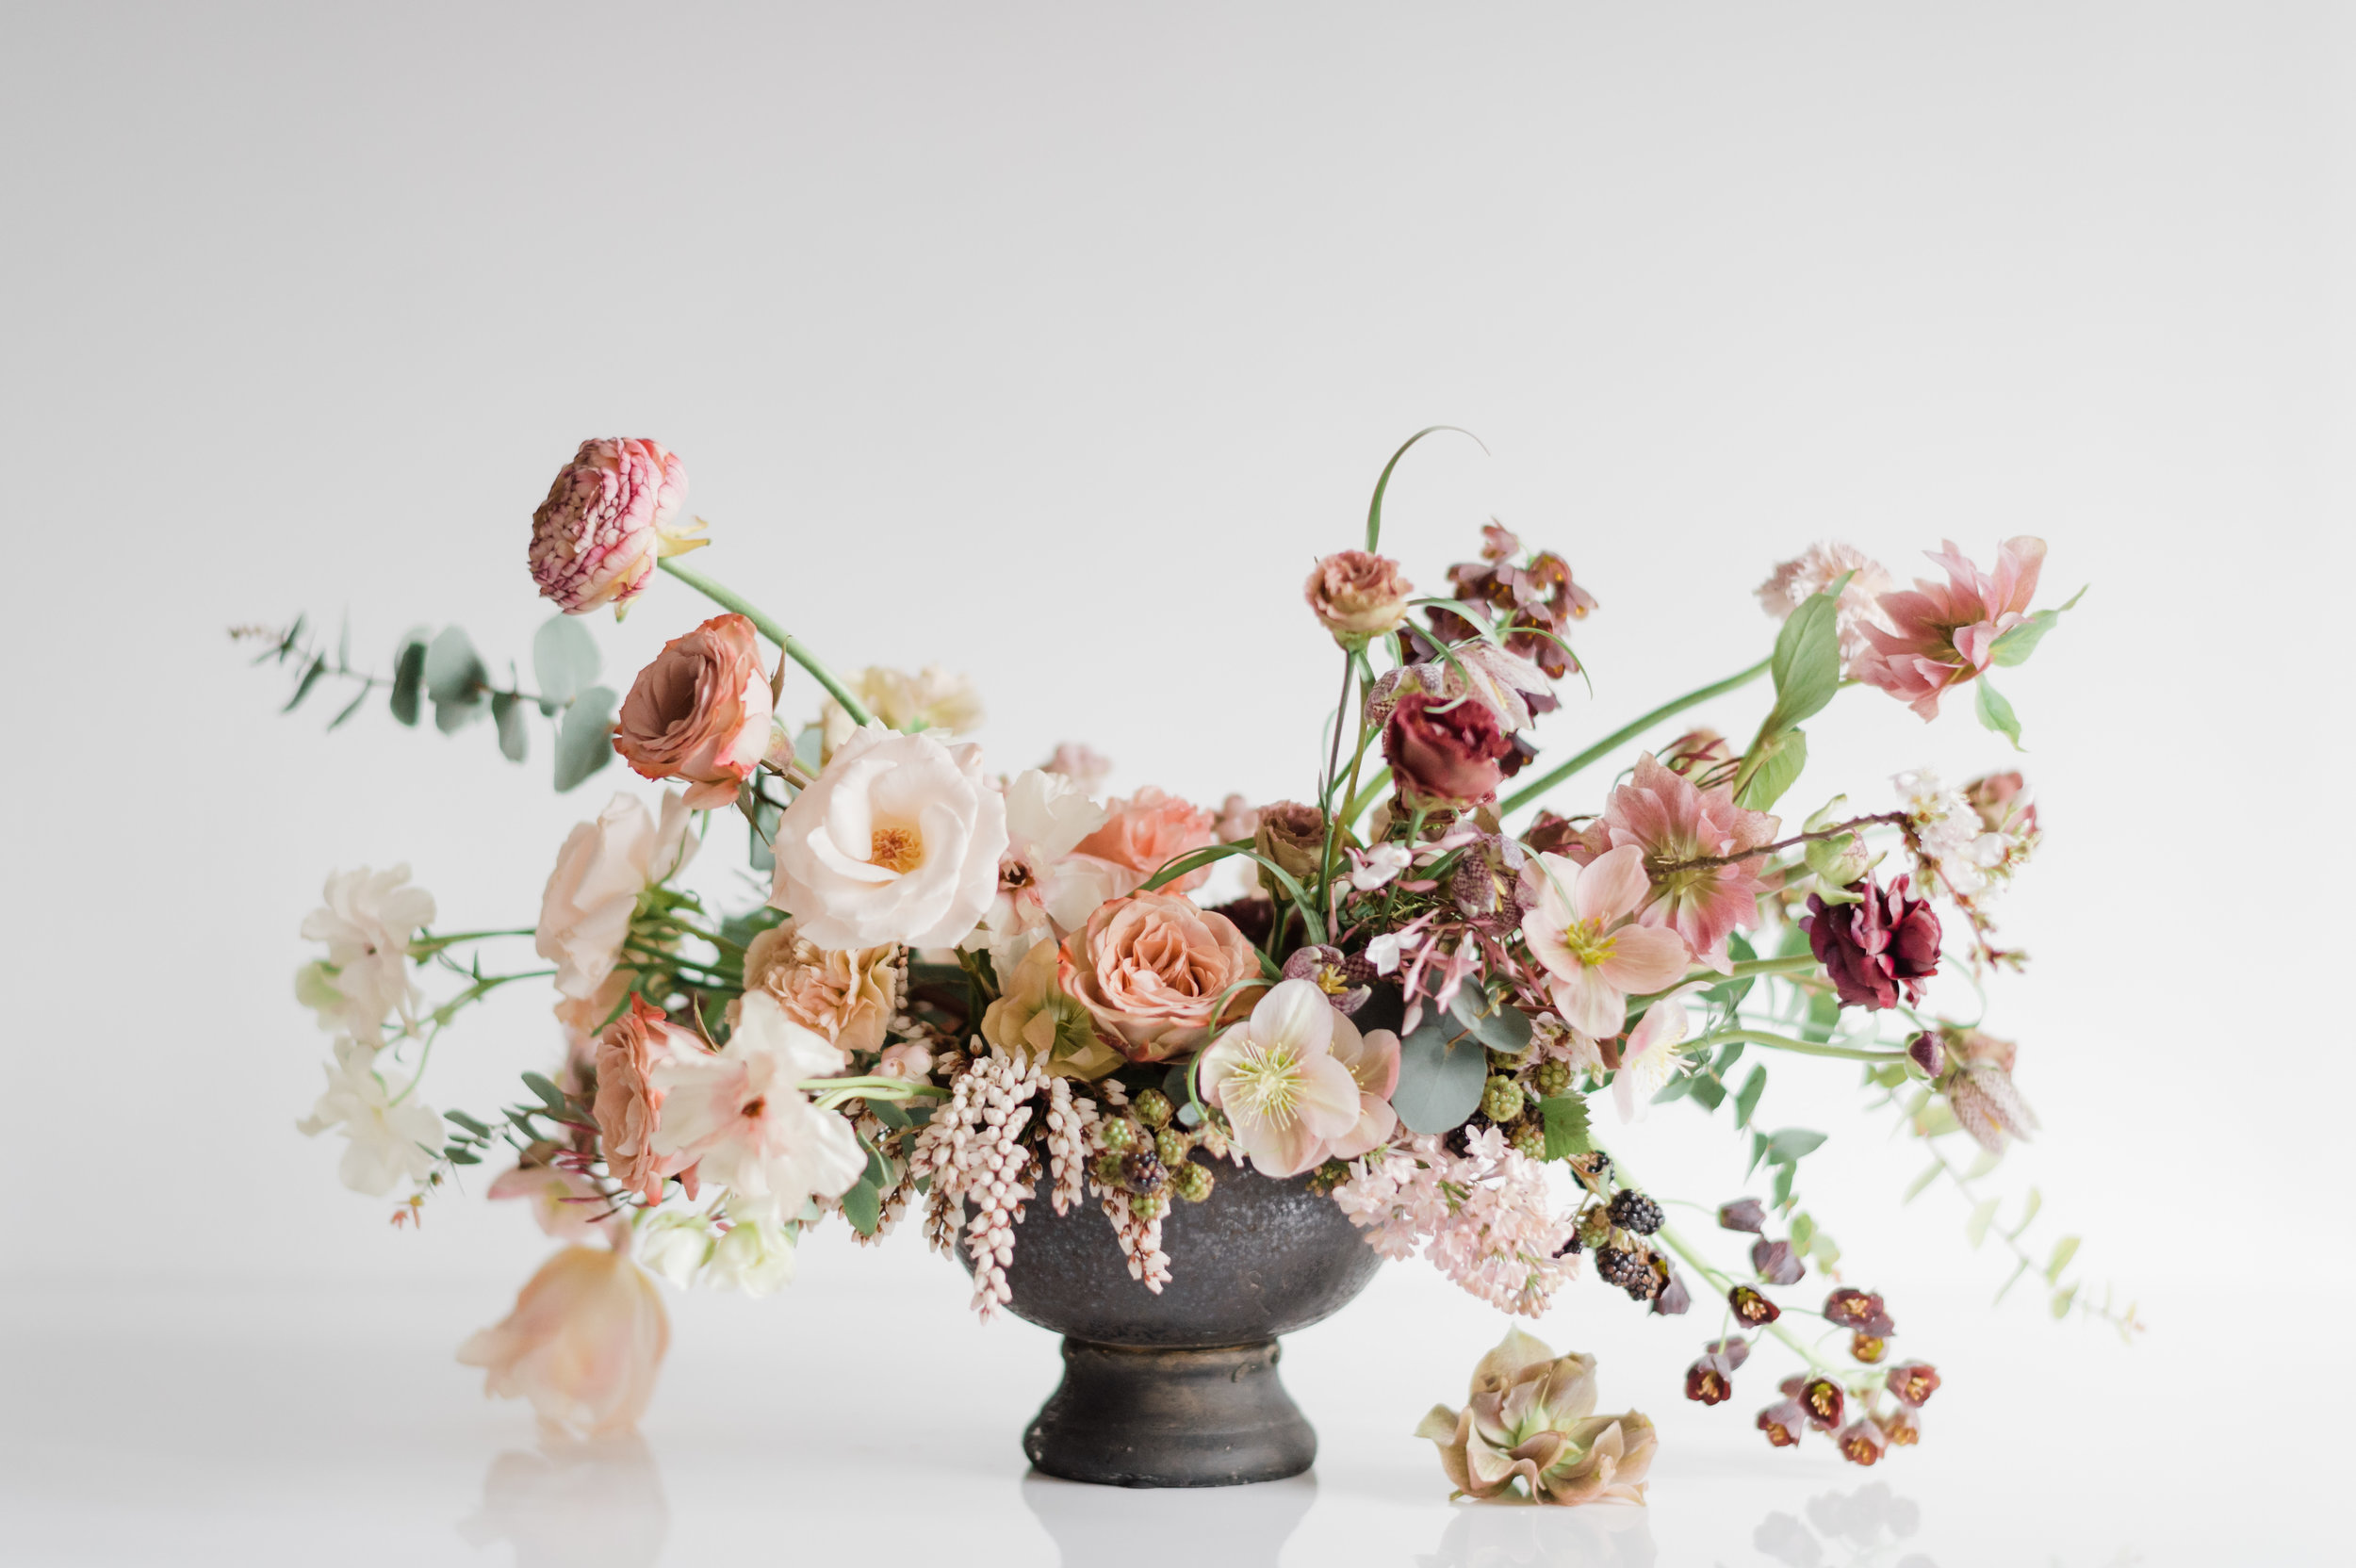 Kristen+Honeycutt+Photo+Co.centerpiece compote blush red pink lisianthus roses hellebore.jpg